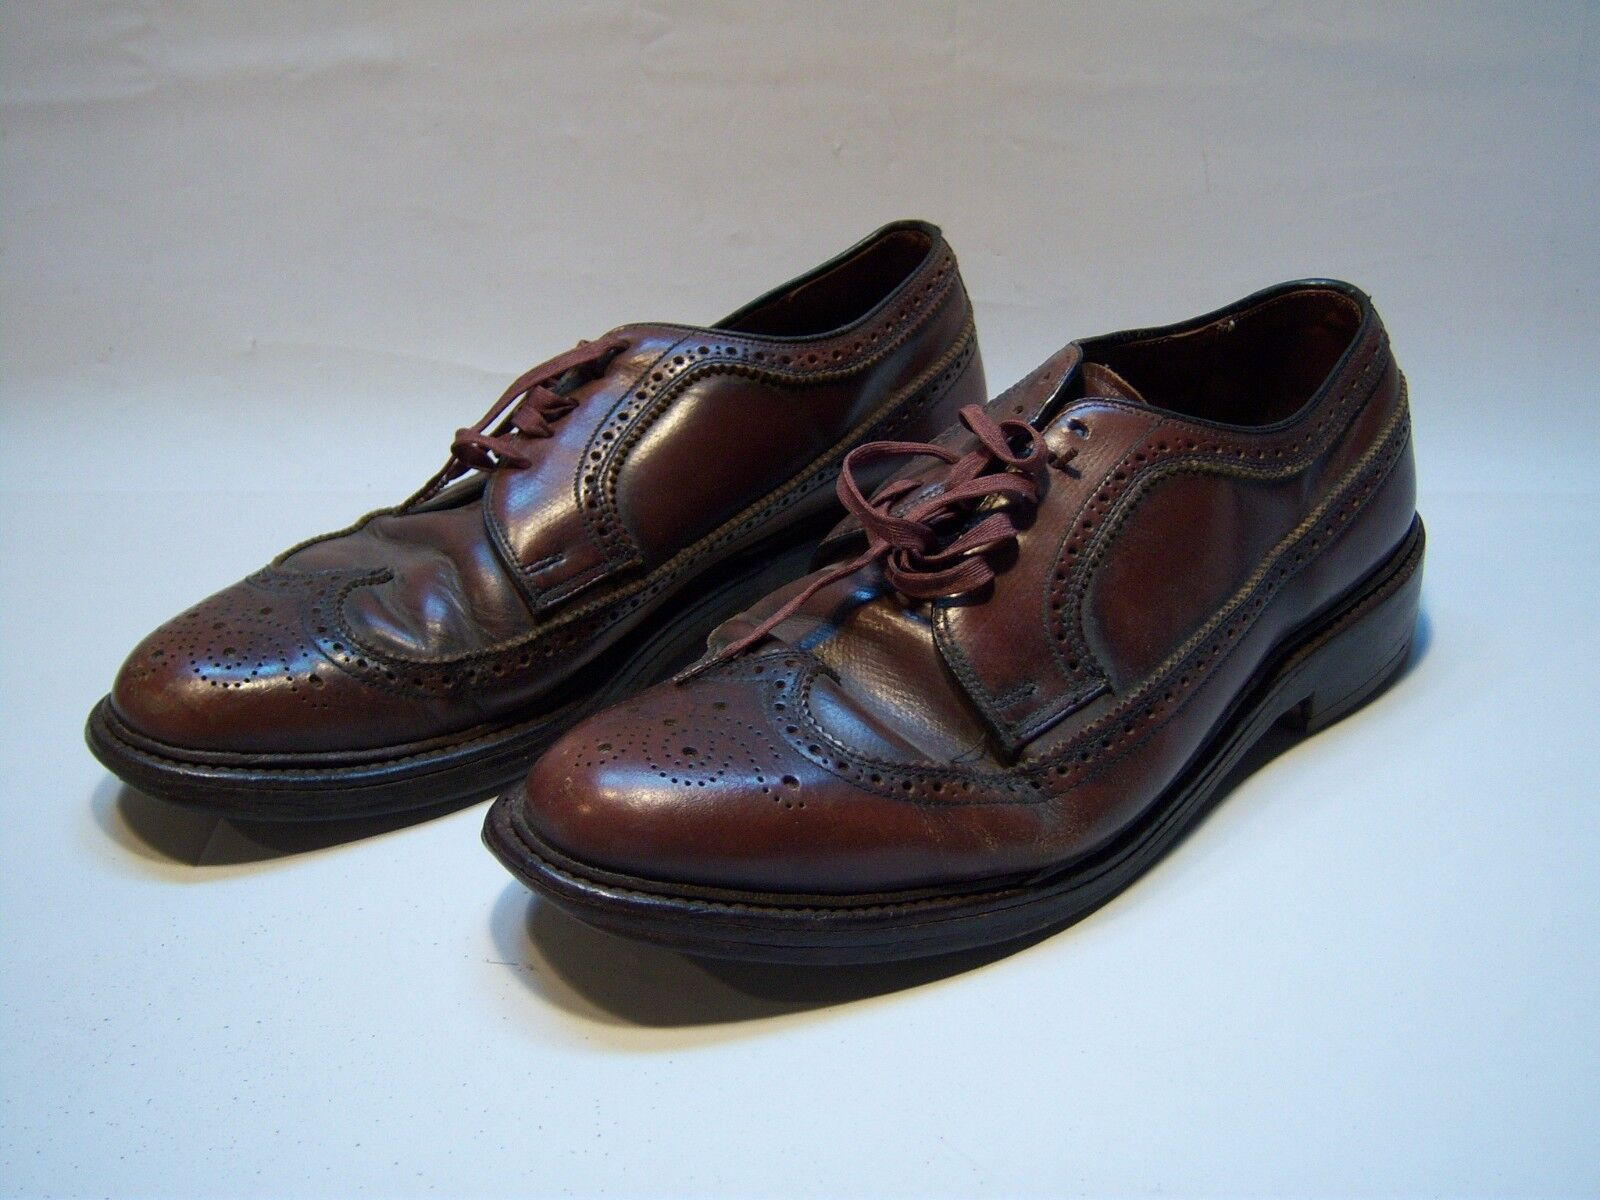 Vintage Casual Leather Oxford Shoes Men's Size 10